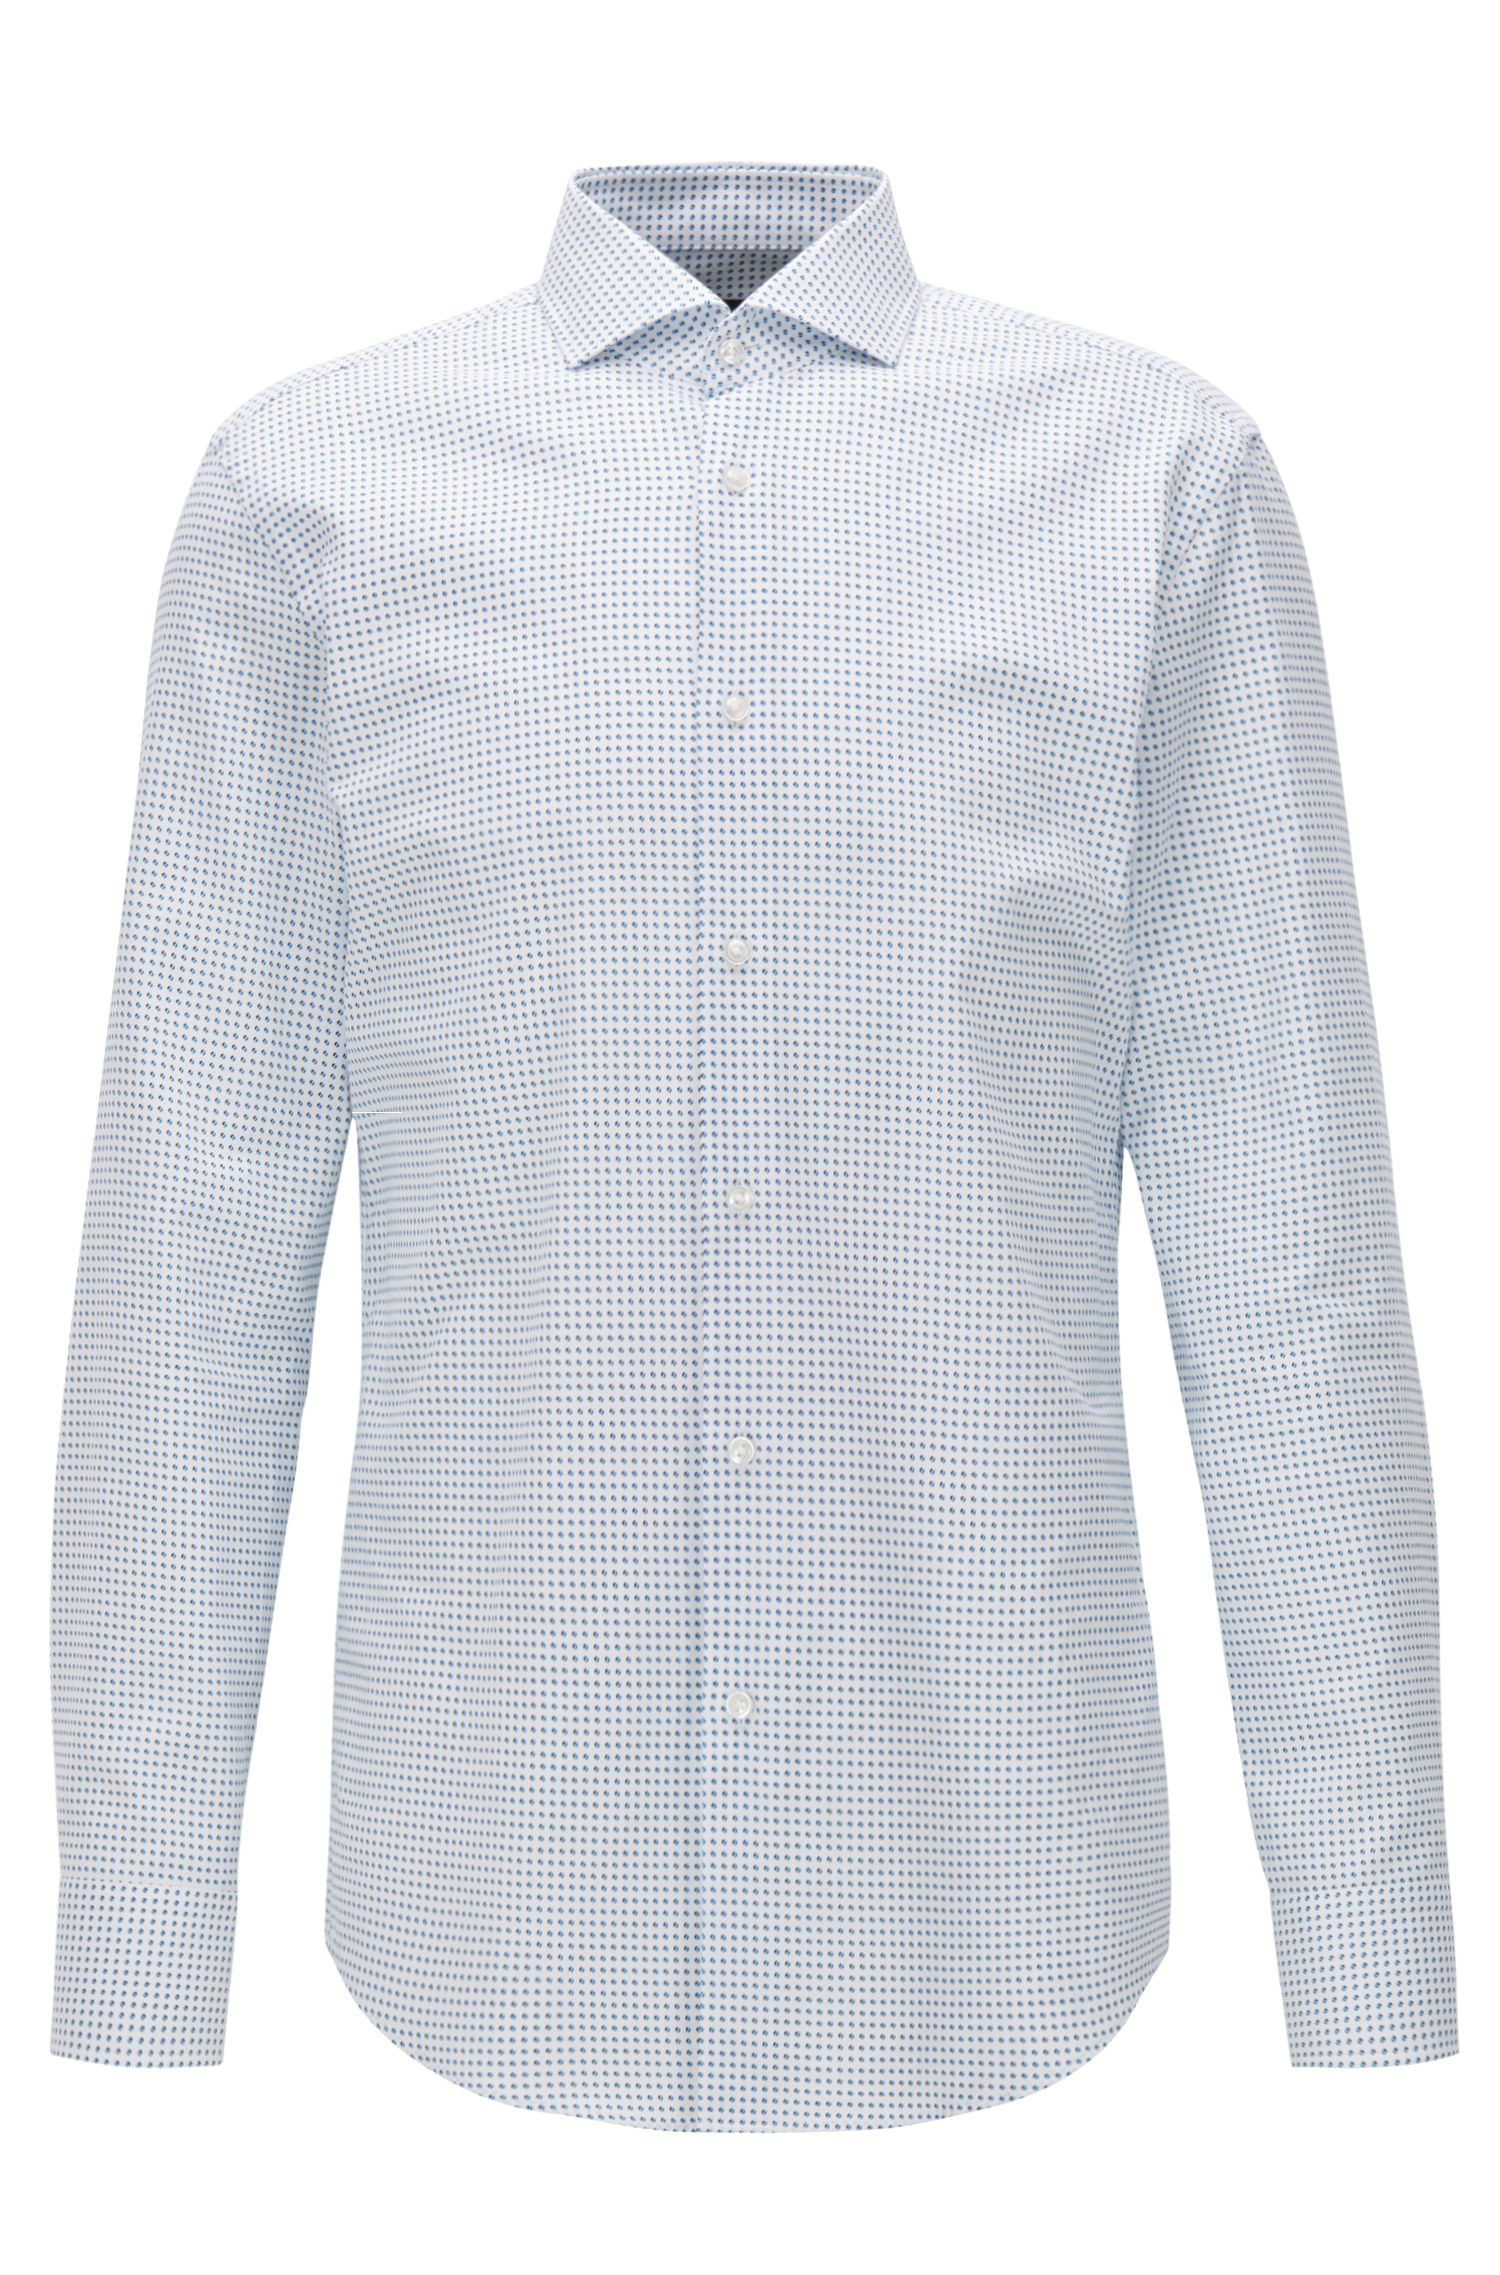 Slim-fit Oxford cotton shirt with rounded motif print